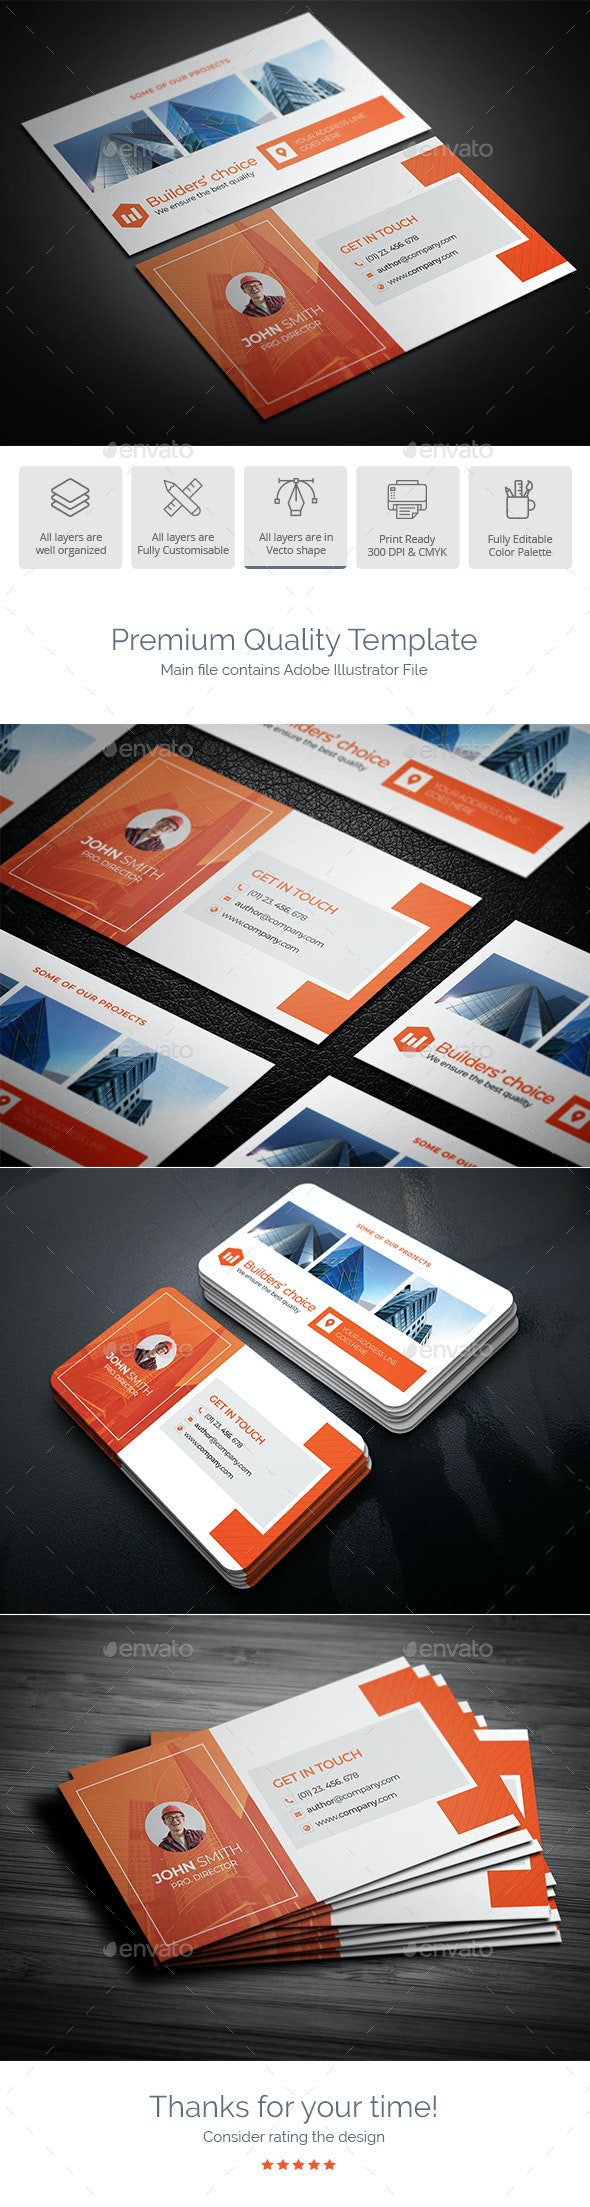 Real Estate Business Card Design - Industry Specific Business Cards